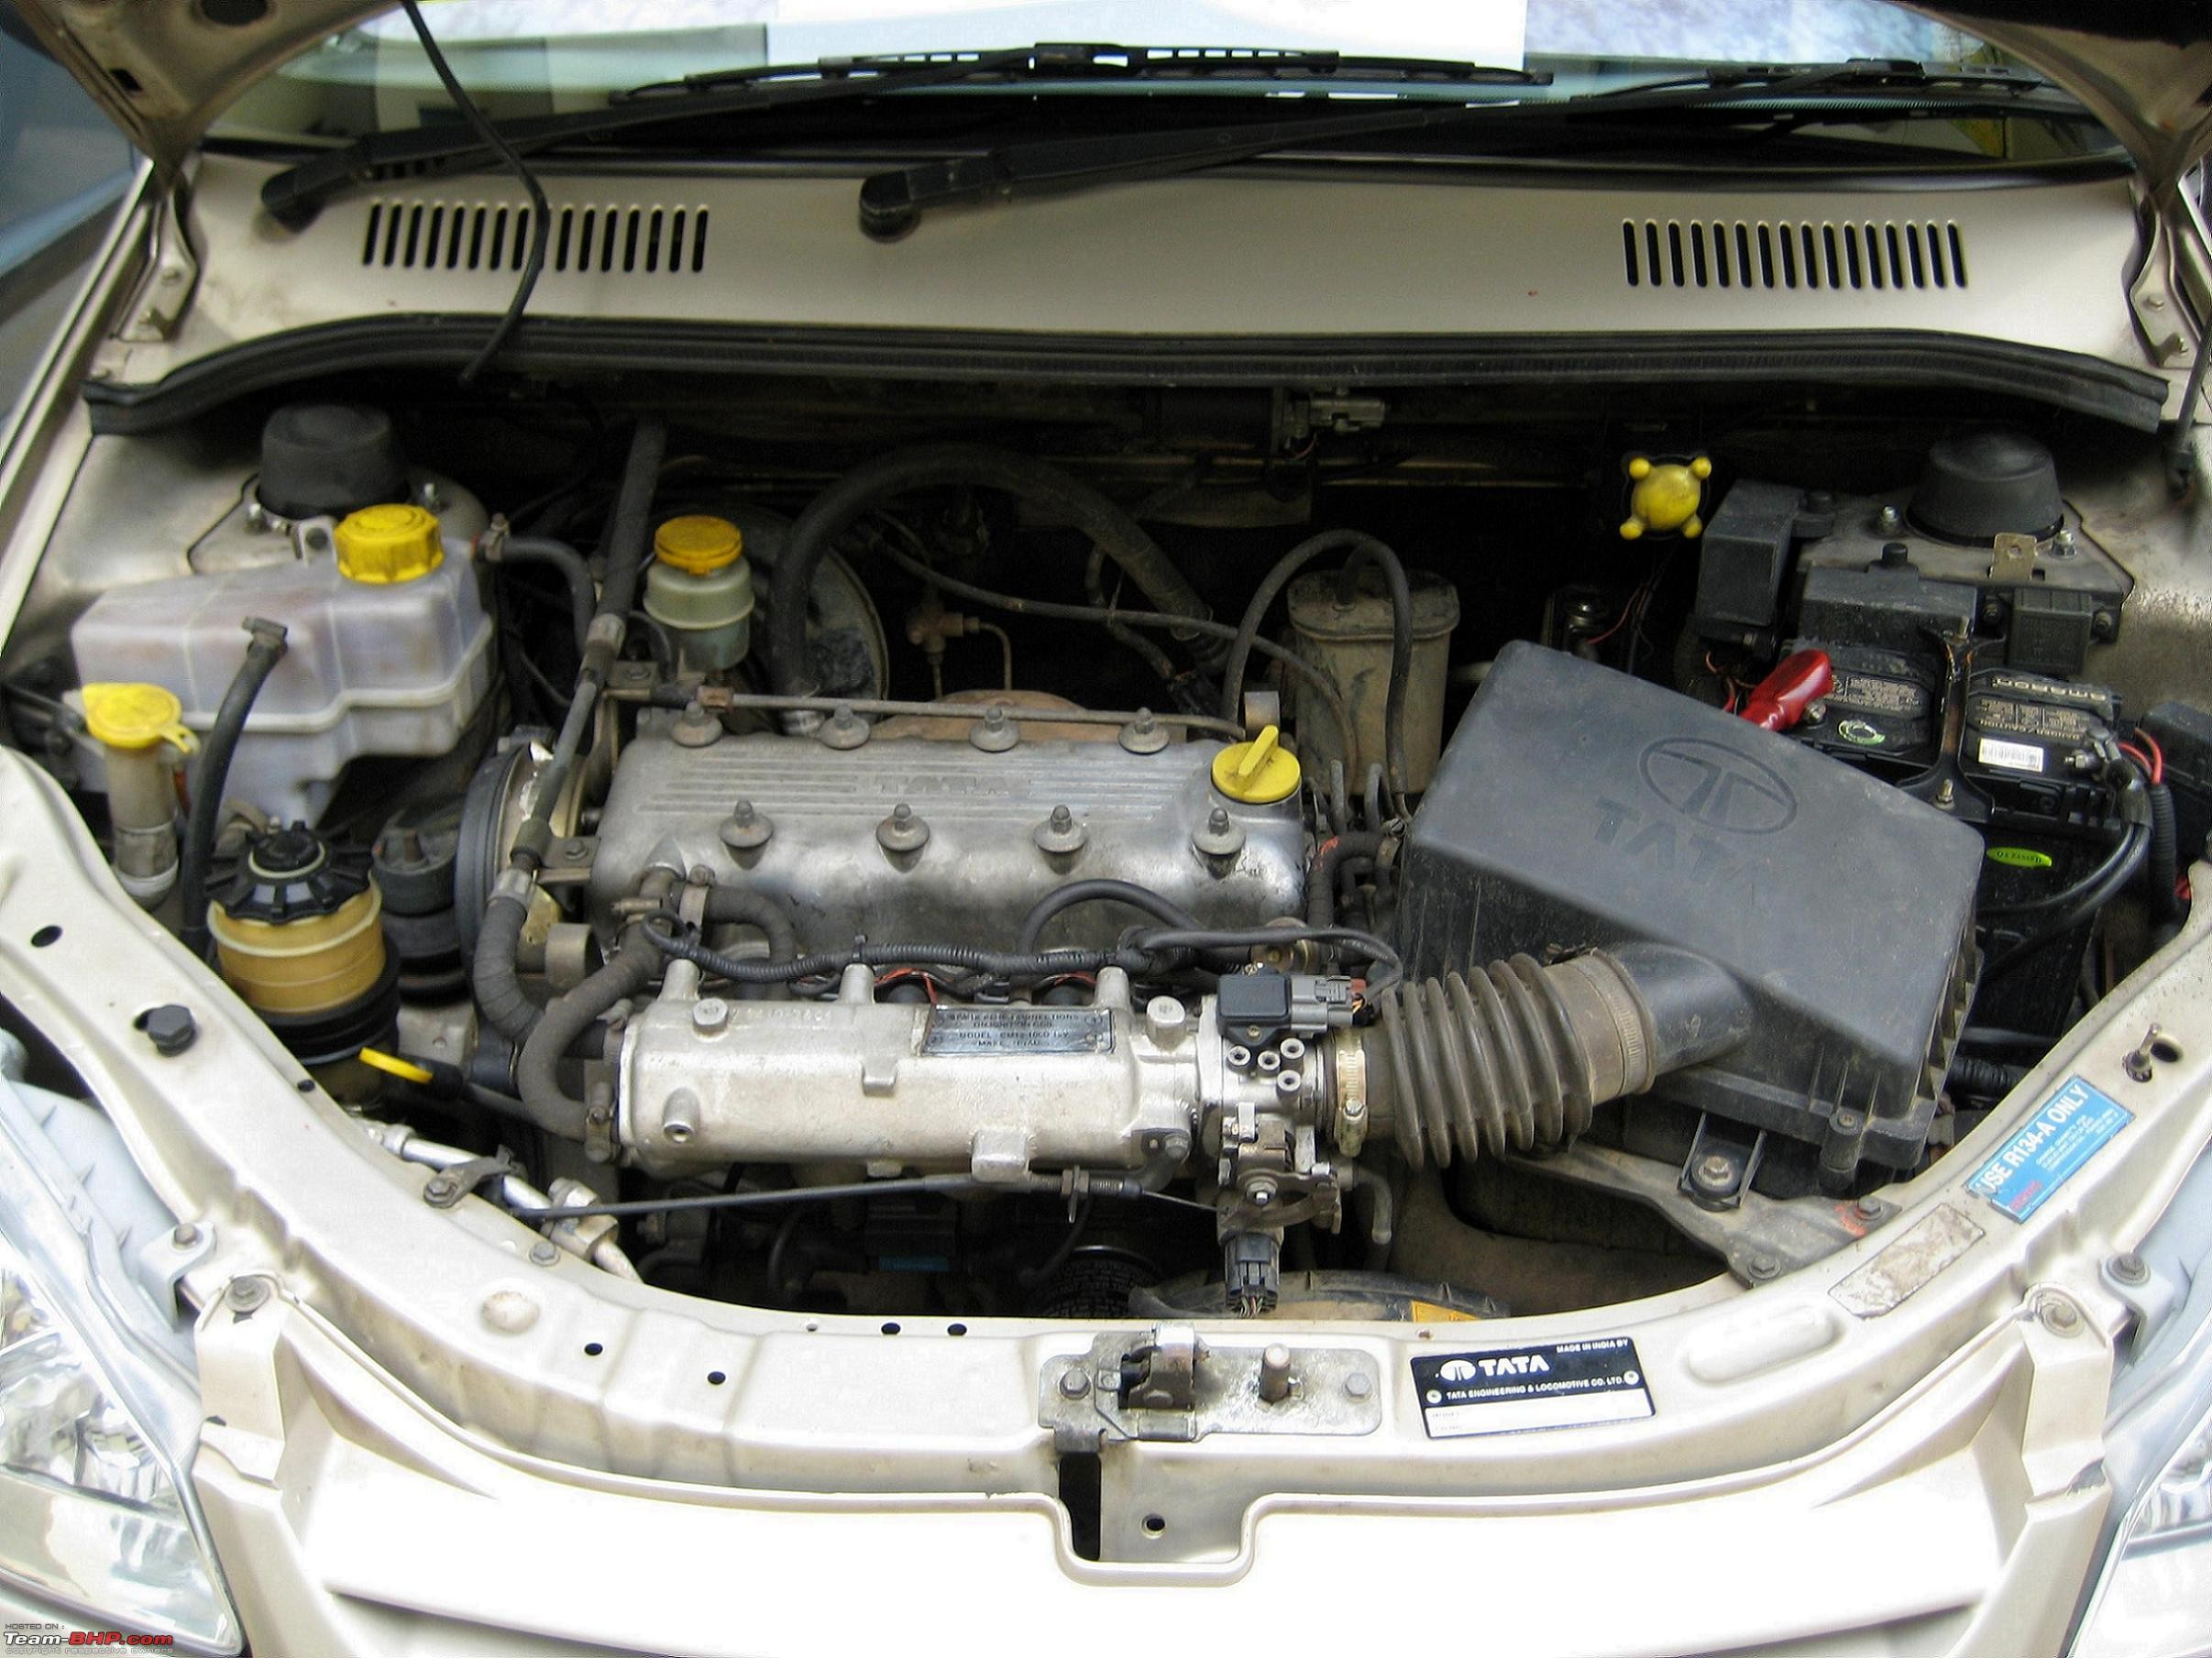 Under the Hood Of A Car Diagram Know Your Car Under the Hood Of A Wagonr Team Bhp Of Under the Hood Of A Car Diagram